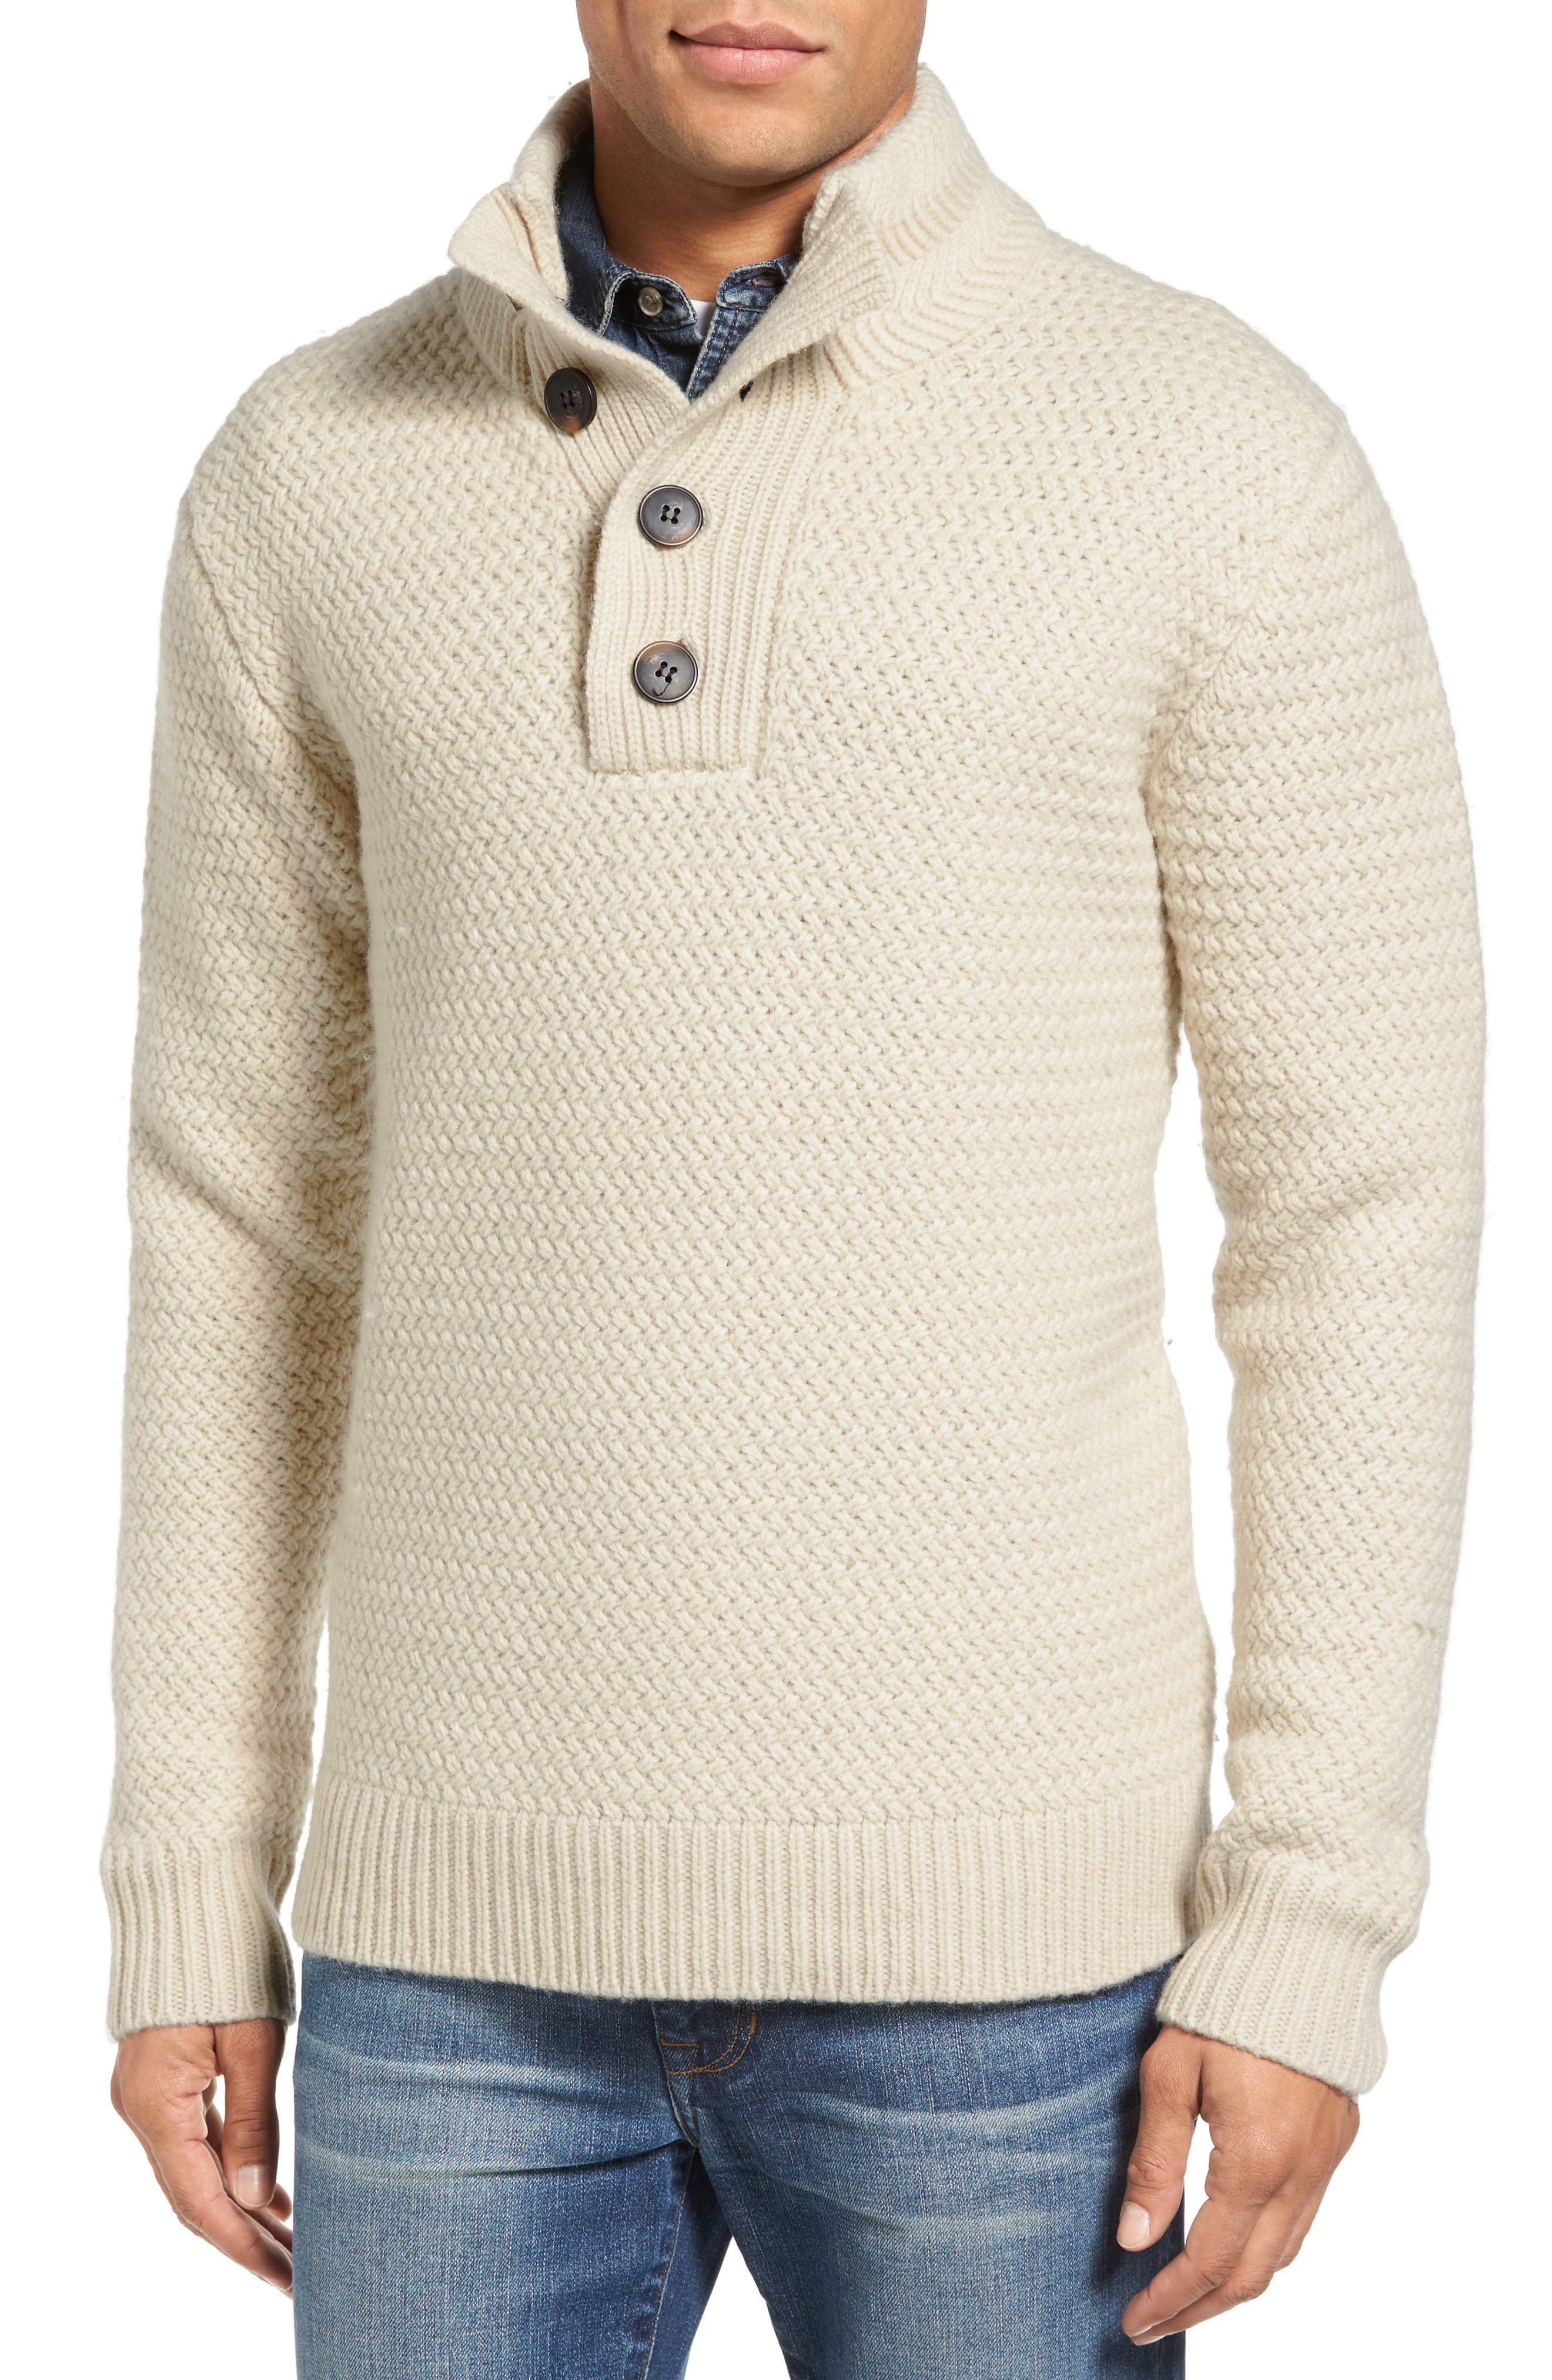 Edwardian Men's Shirts & Sweaters Mens Schott Nyc Military Henley Sweater Size XX-Large - White $125.00 AT vintagedancer.com